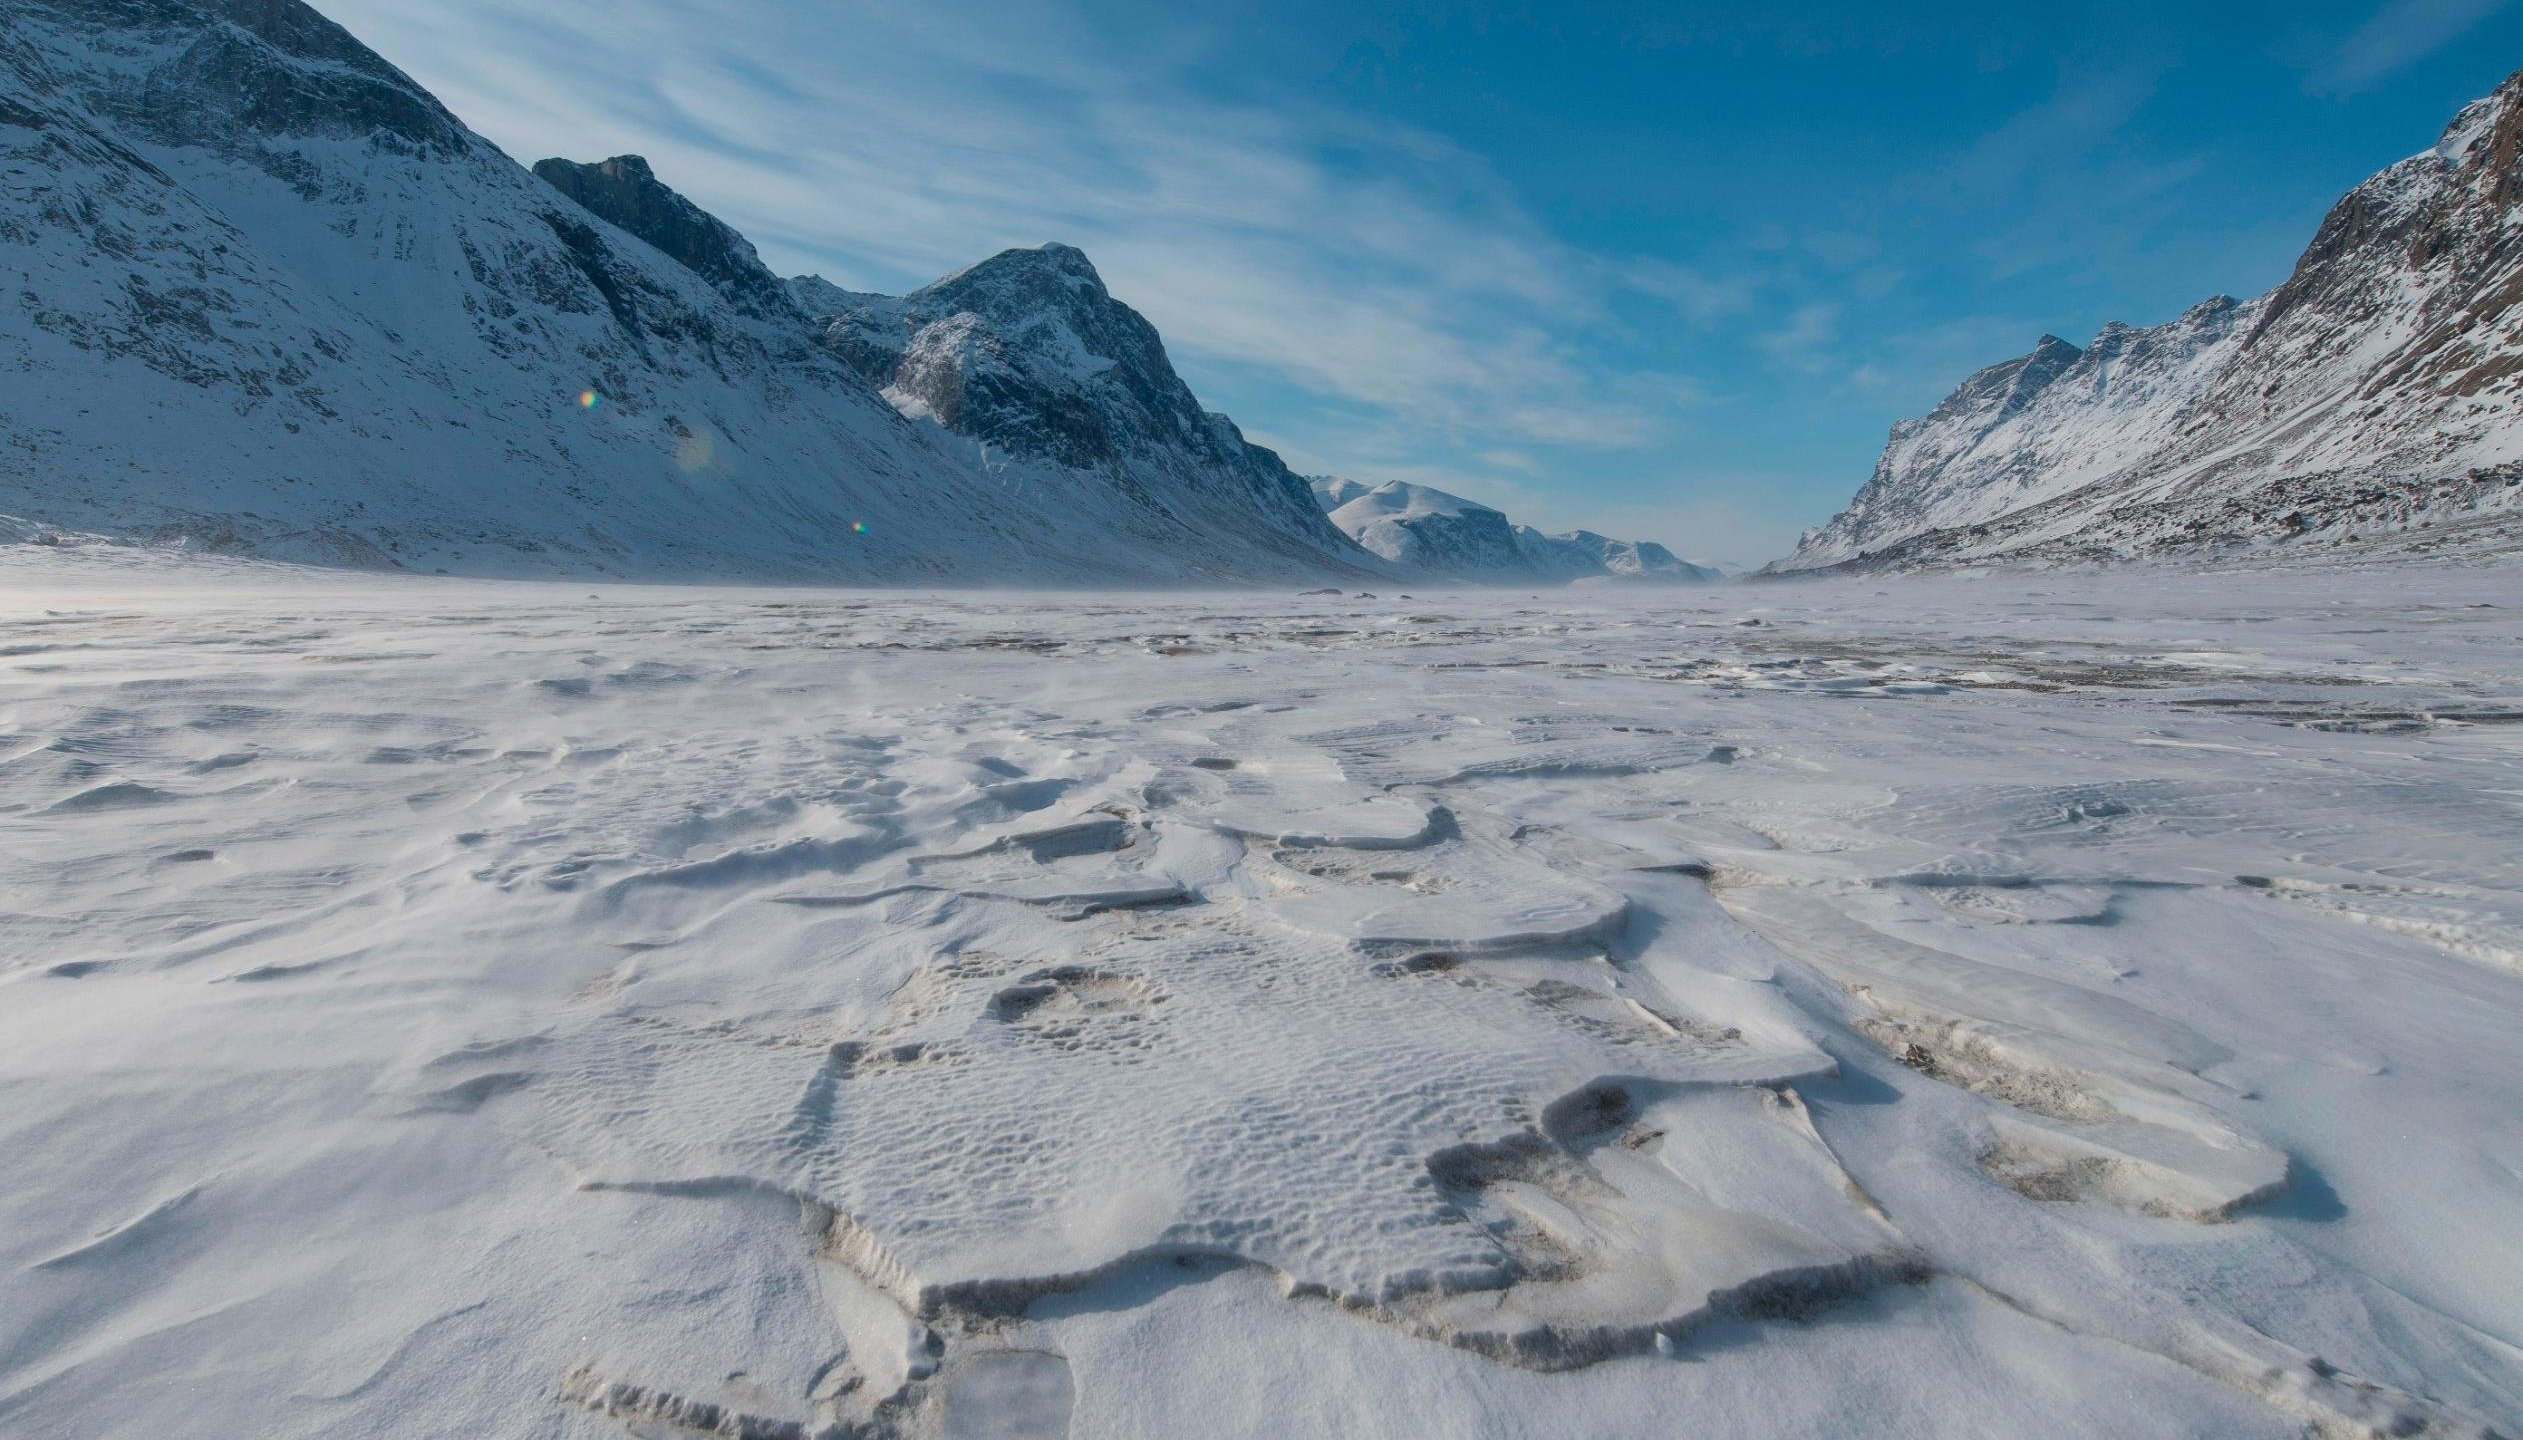 Mountains surround the frozen Weasel River through Akshayuk Pass, in Auyuittuq National Park on April 16, 2017, on Baffin Island, Canada. (Credit: Christopher Morris/Corbis/Getty Images via CNN)